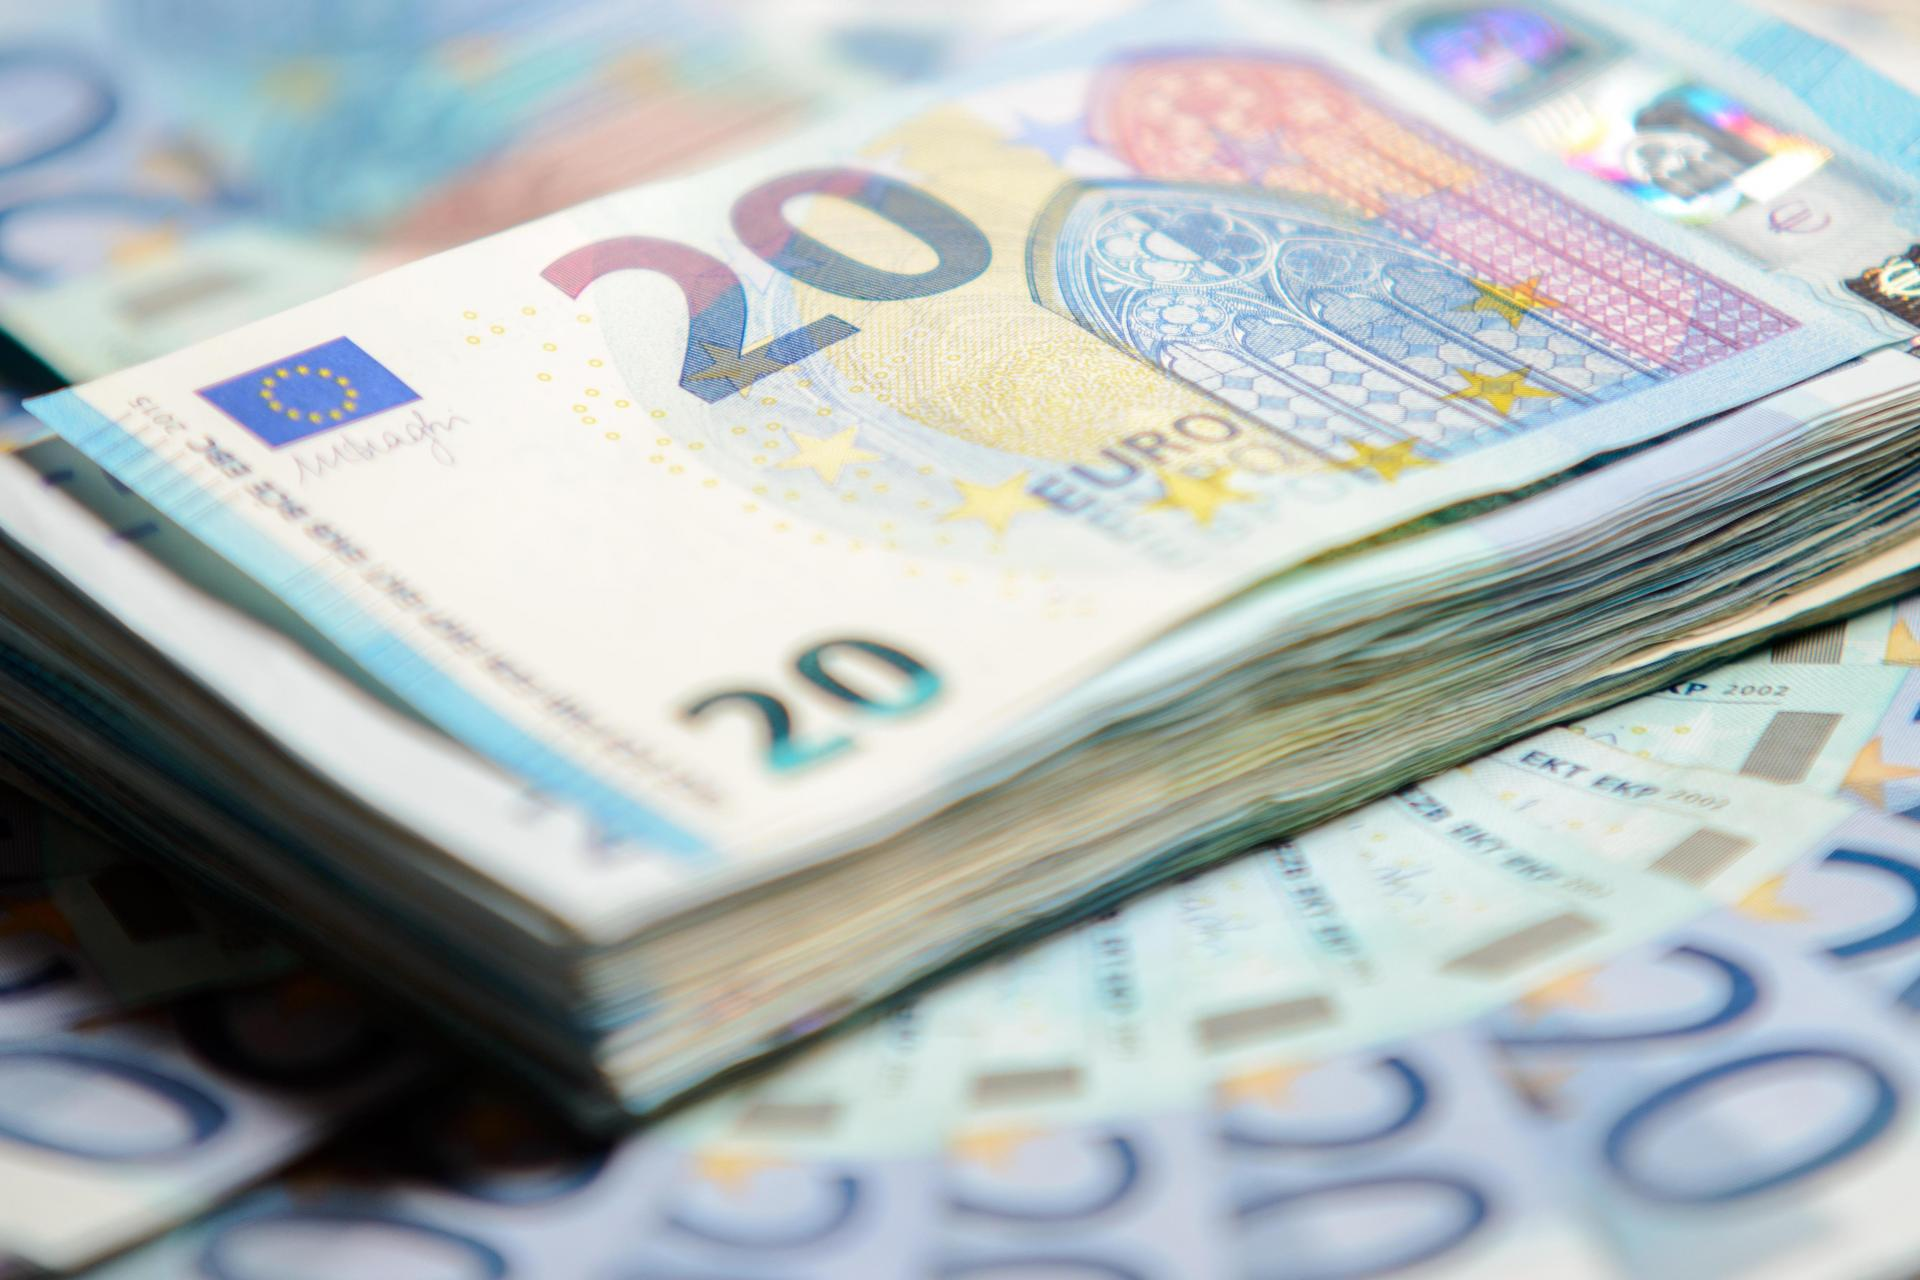 Budget 2020: €10,000 cash transaction limit on high-value purchases